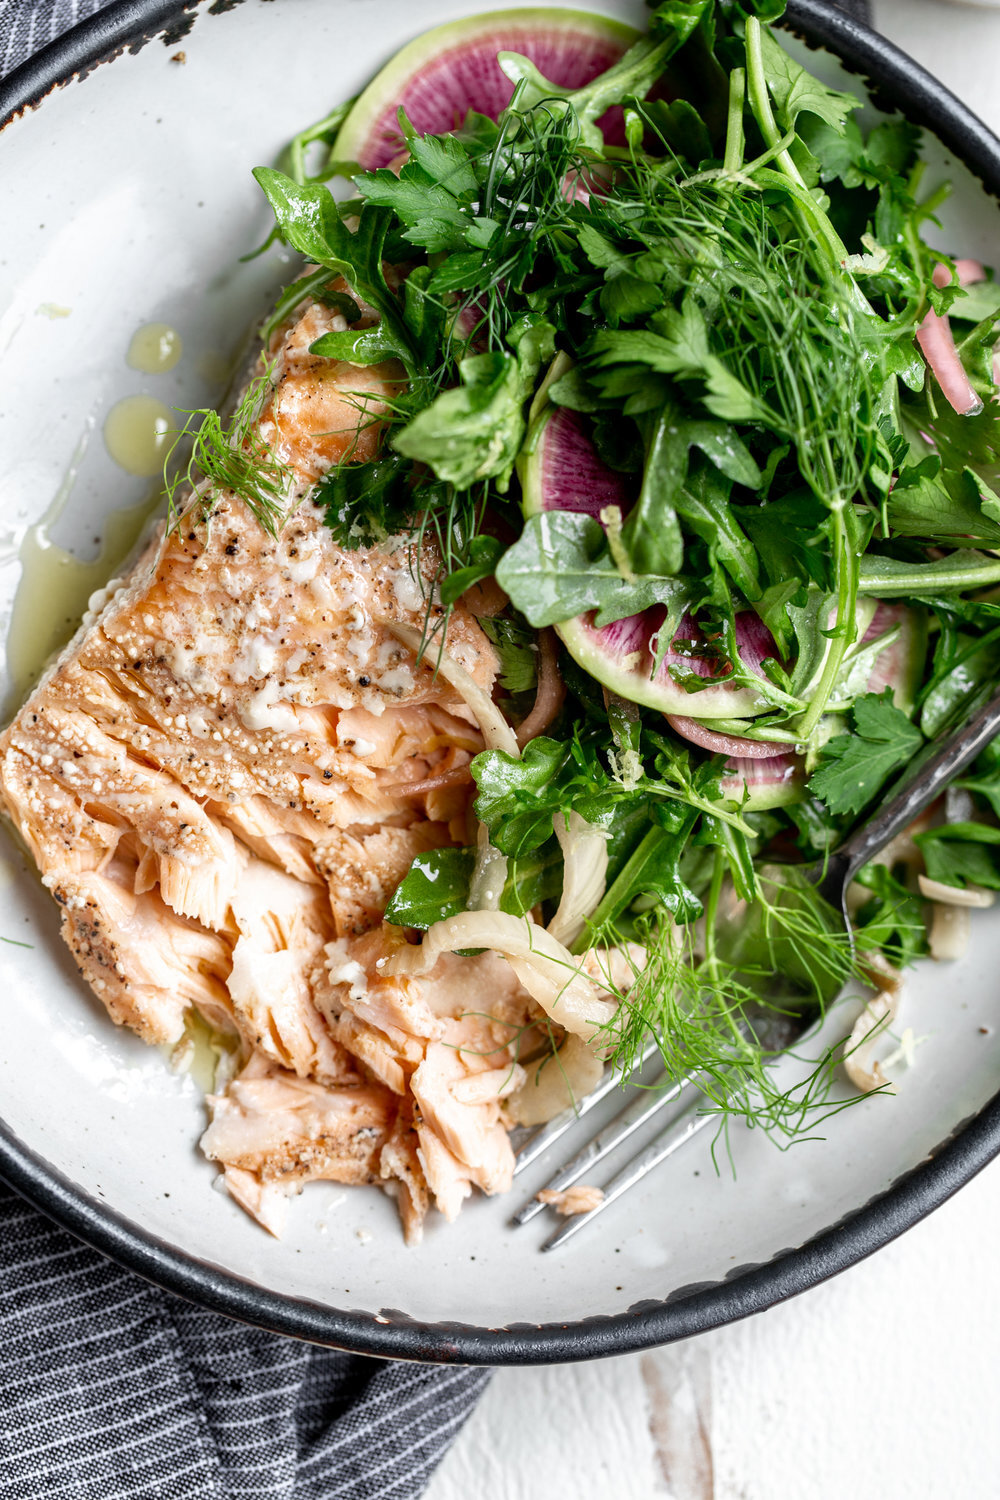 Olive Oil Slow-Poached Salmon with Fennel and Lemon Arugula Herb Salad